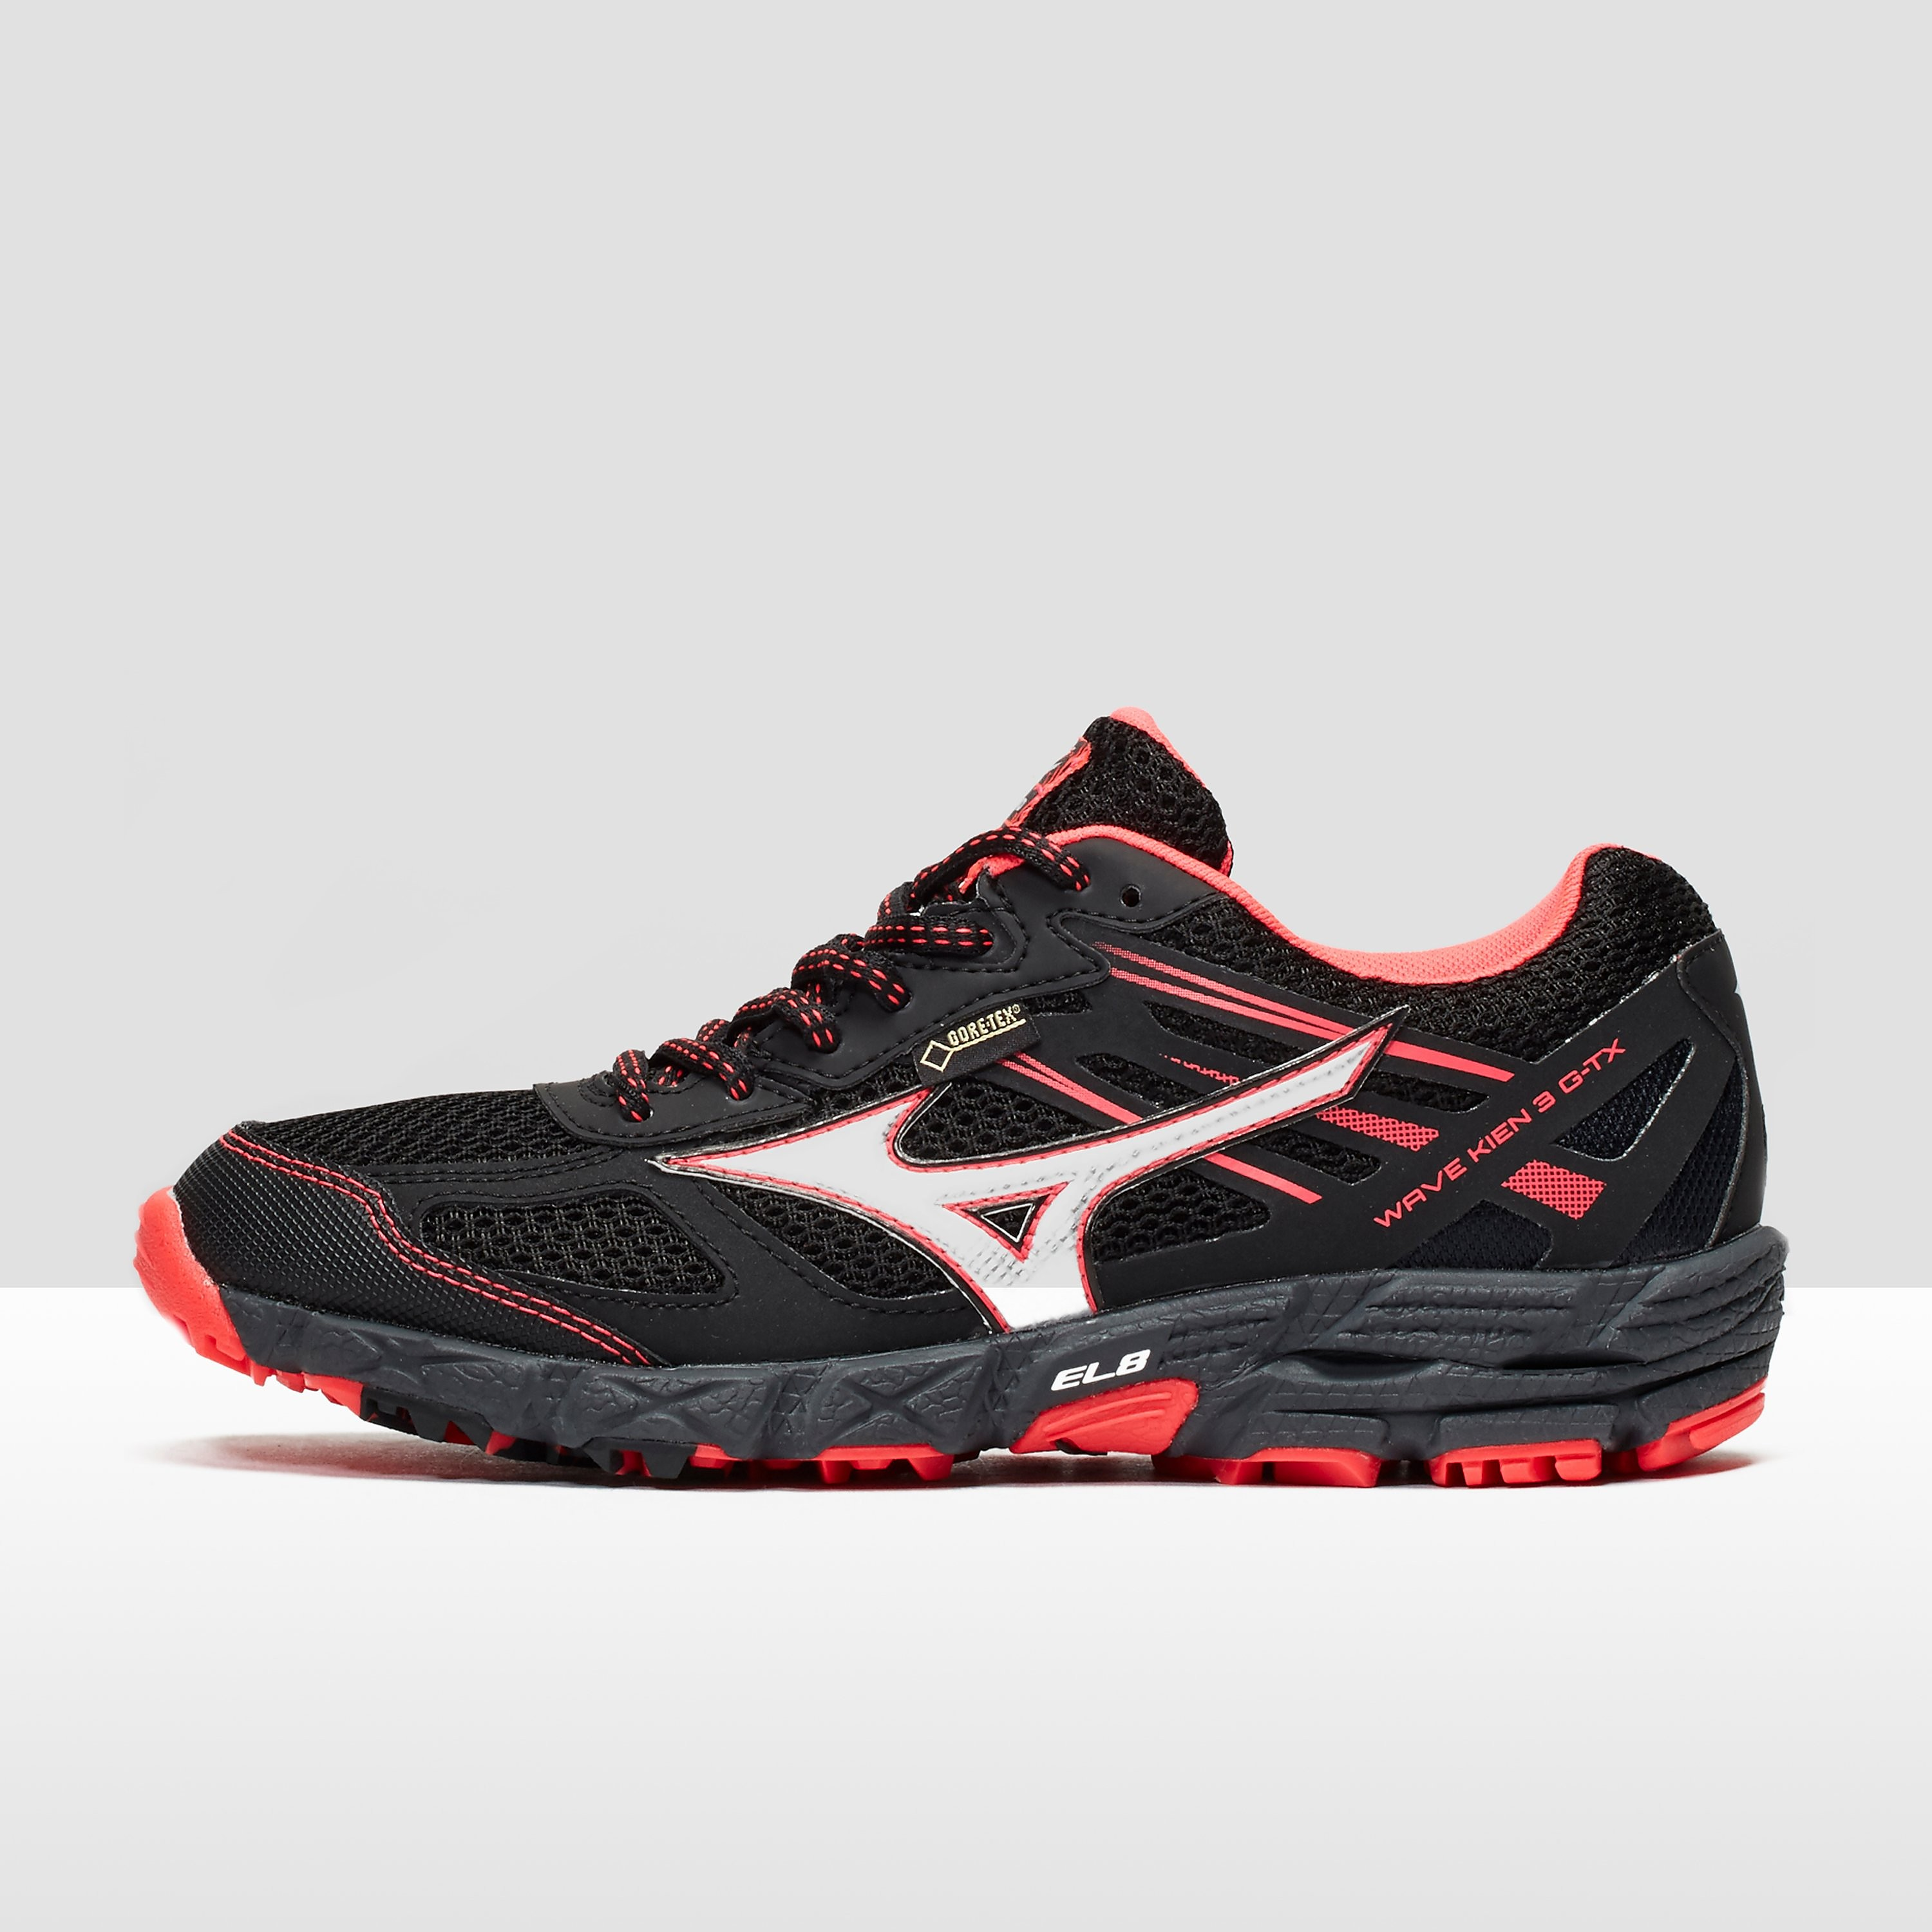 Mizuno Wave Kien 3 G-TX Women's Trail Running Shoes